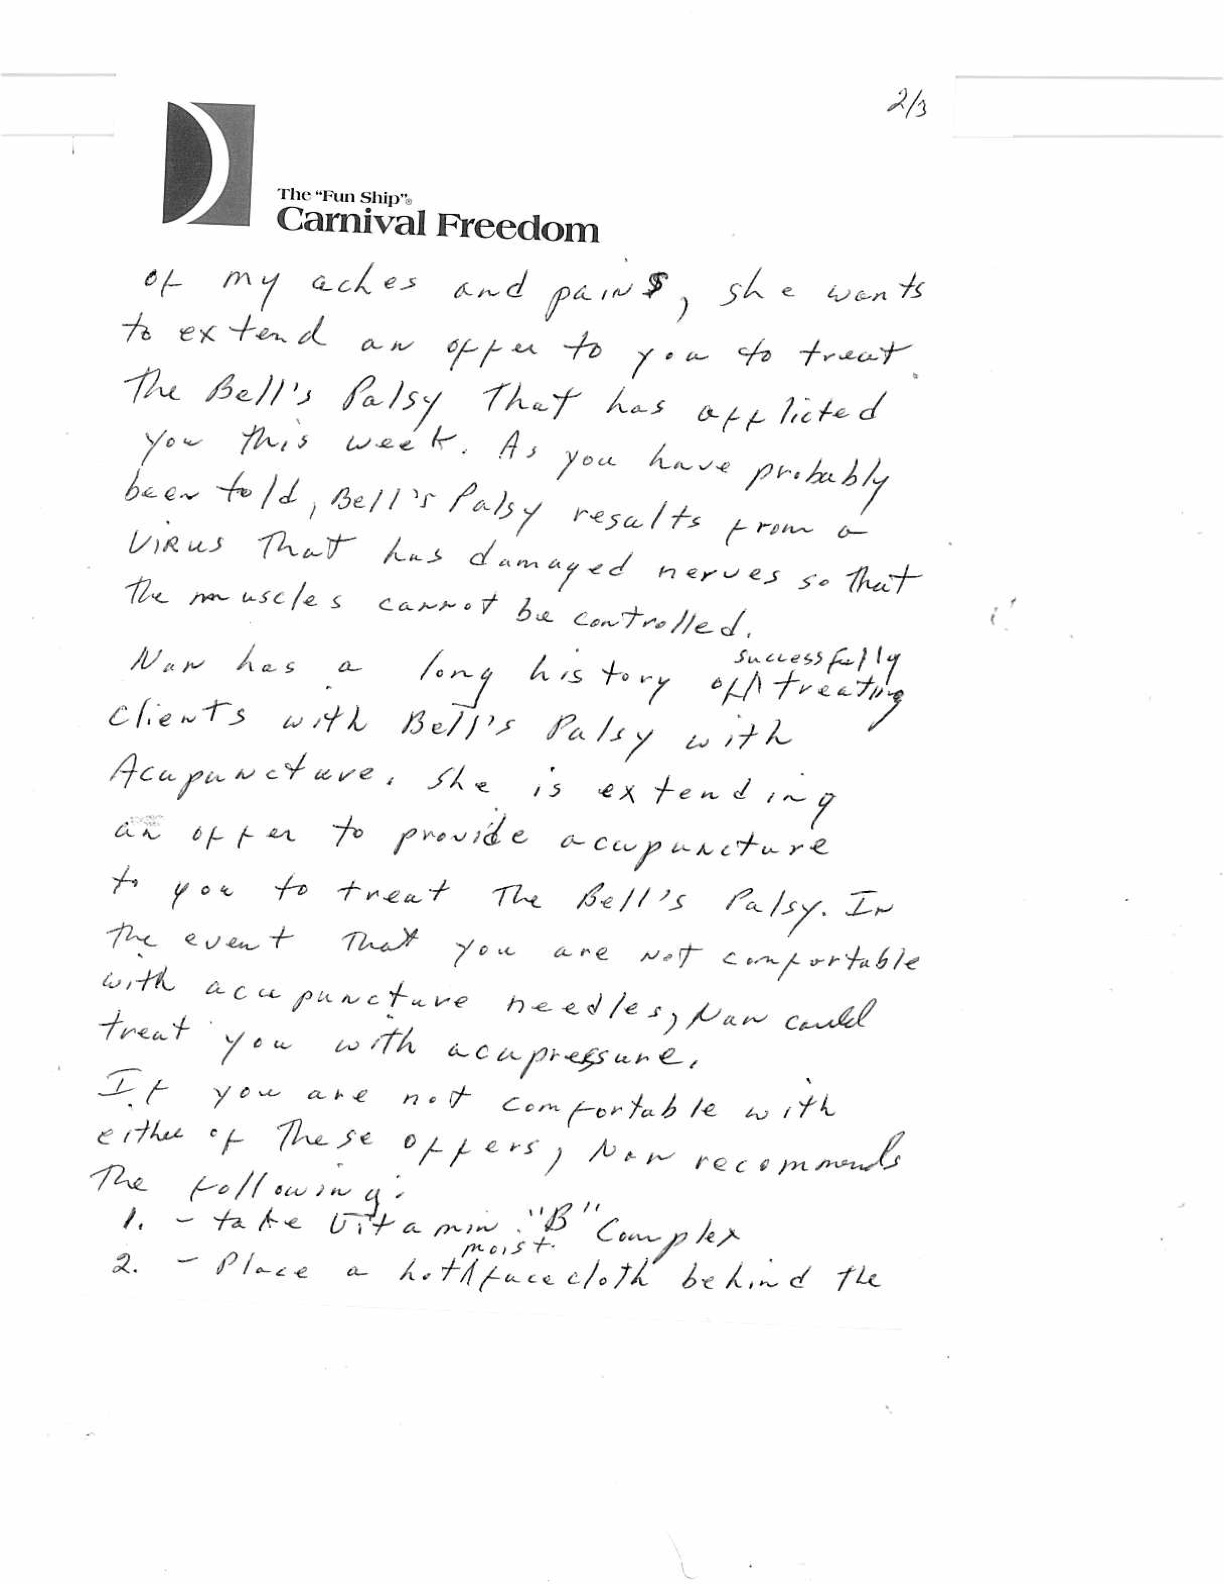 letter2page2.jpg